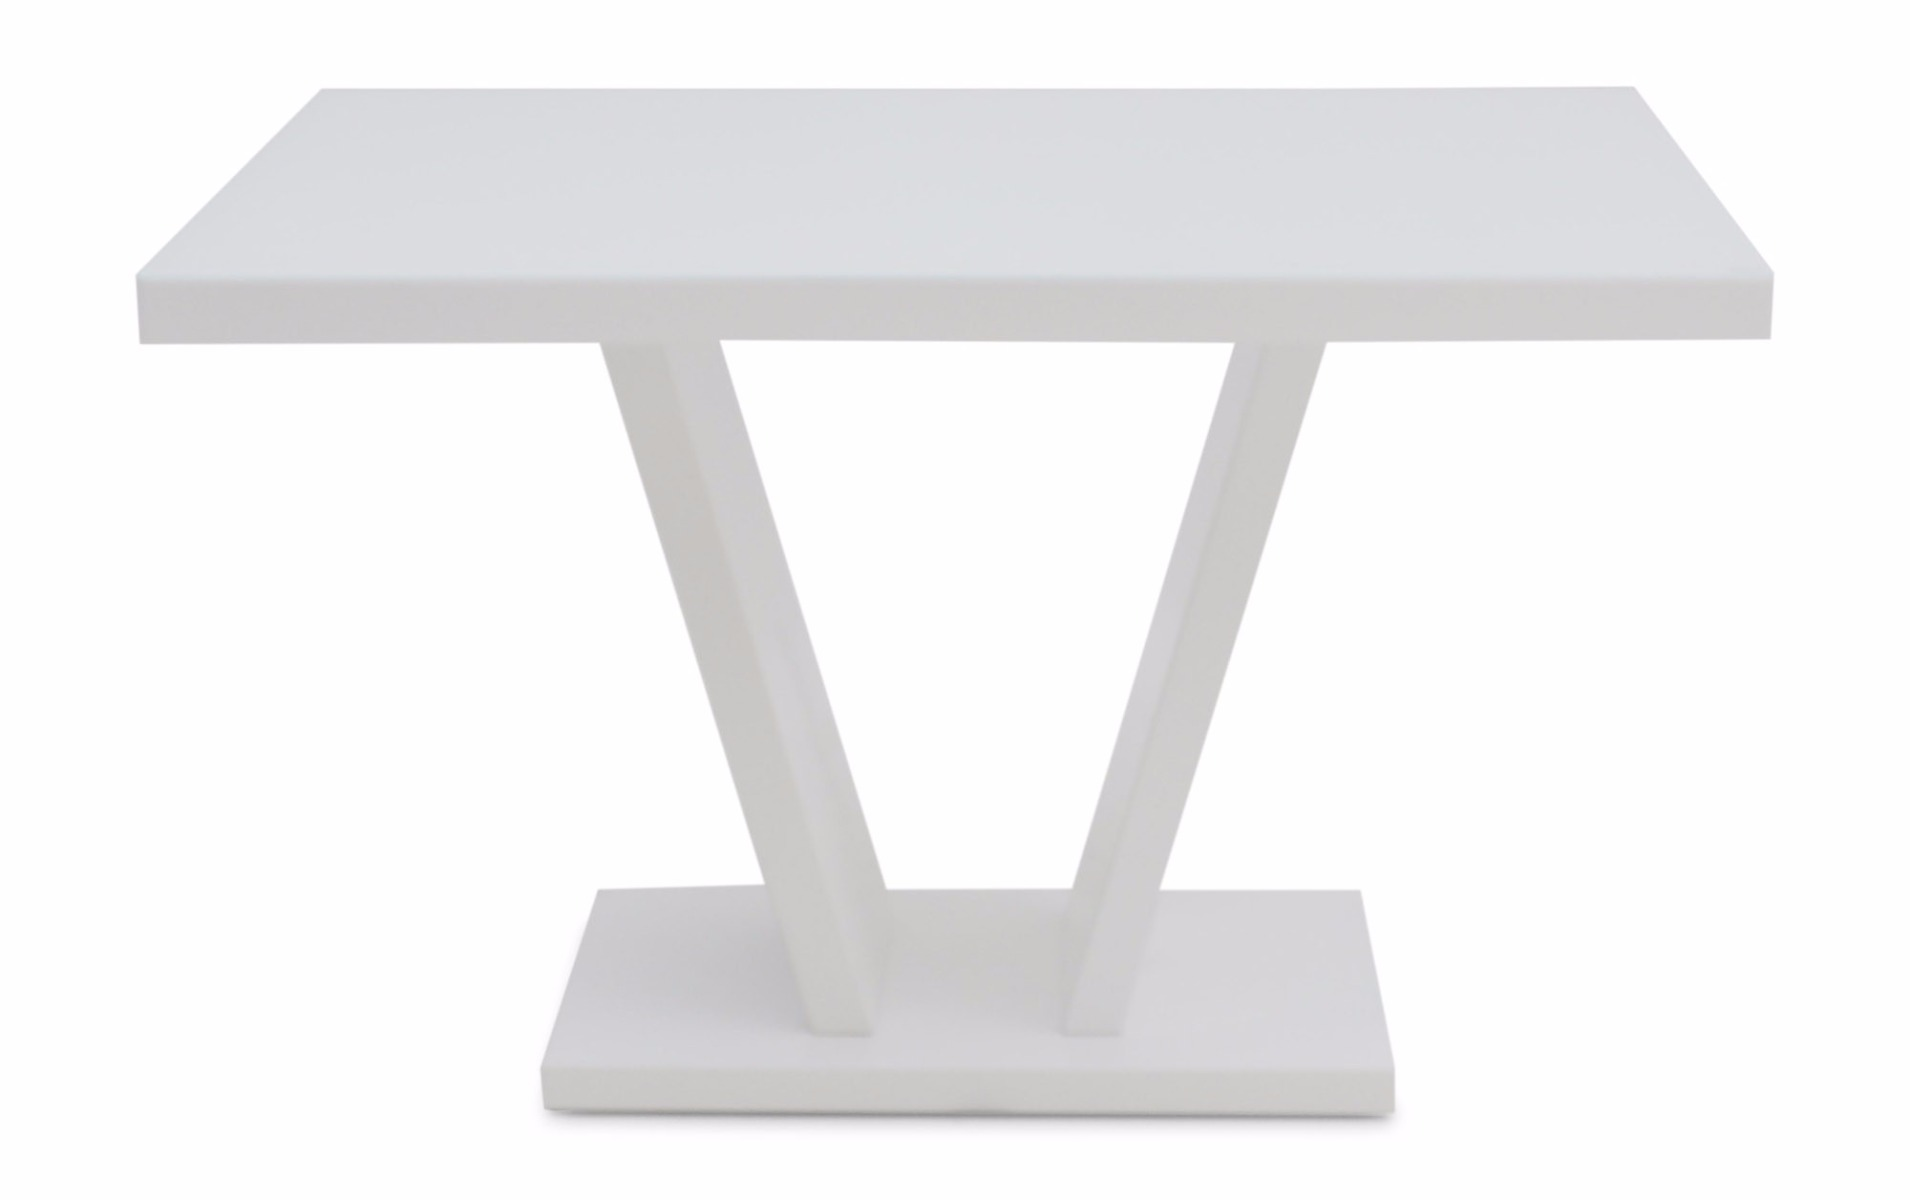 https://www.firstfurniture.co.uk/pub/media/catalog/product/f/a/fairmont_valentino_white_high_gloss_dining_table_1_4.jpg